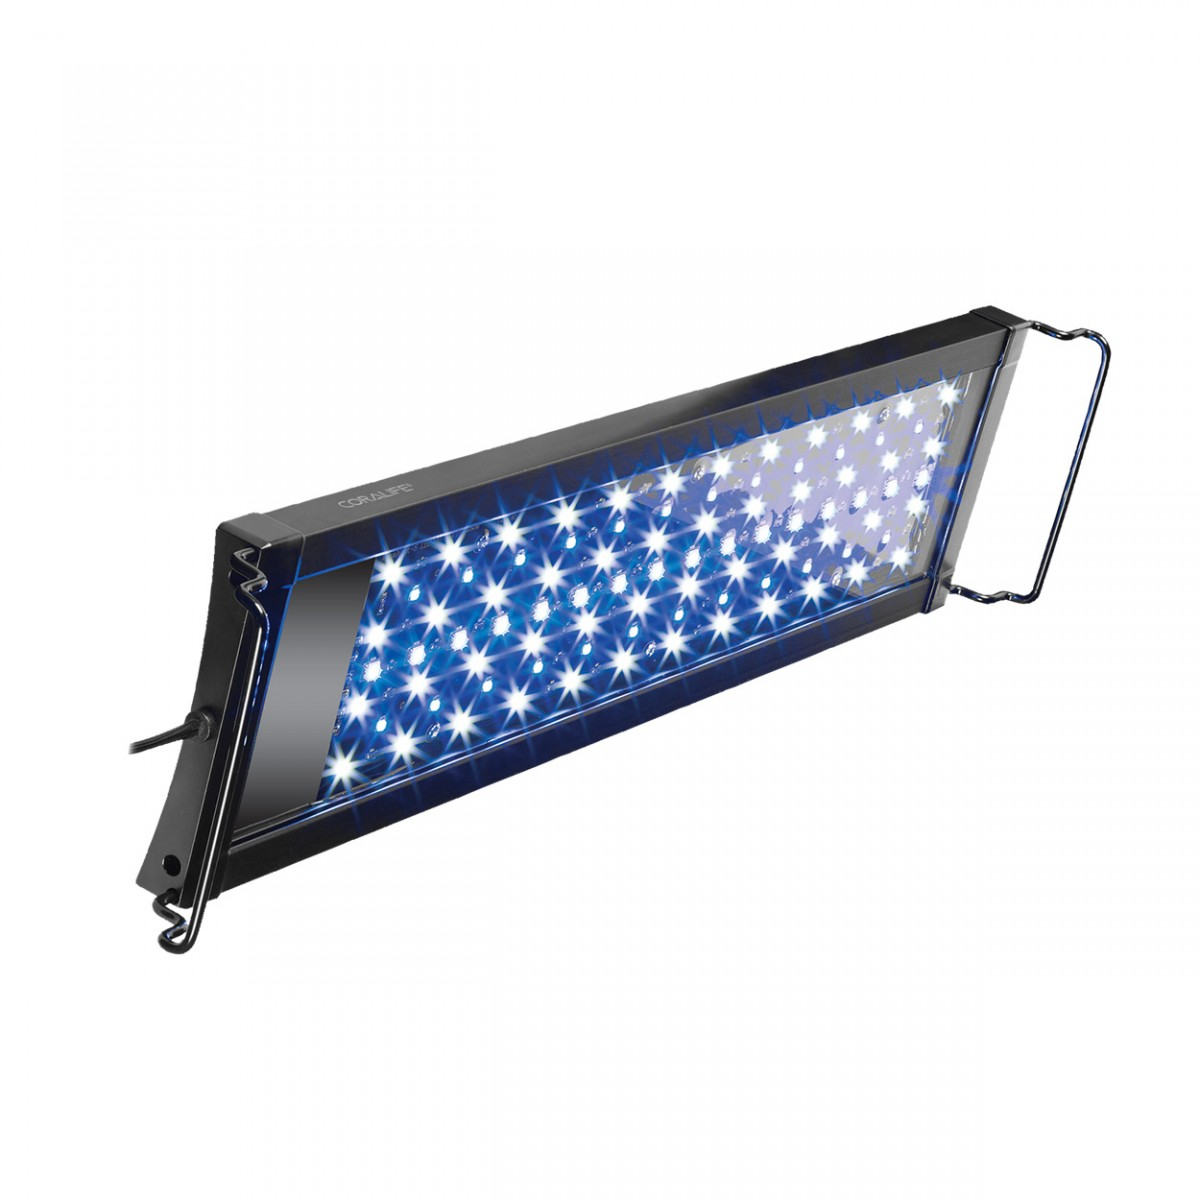 24 X 24 Led Light Fixture: Coralife Seascape LED Aquarium Light Fixture